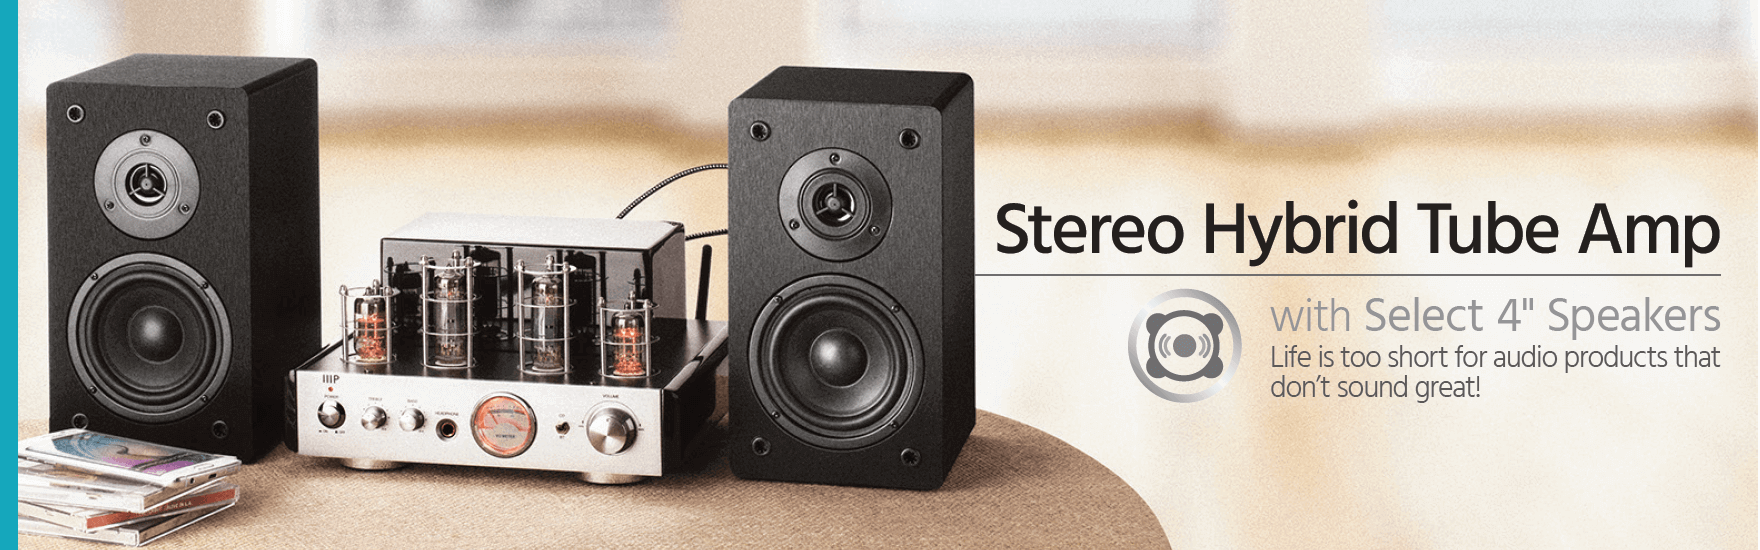 Stereo Hybrid Tube Amp with Select 4-inch Speakers